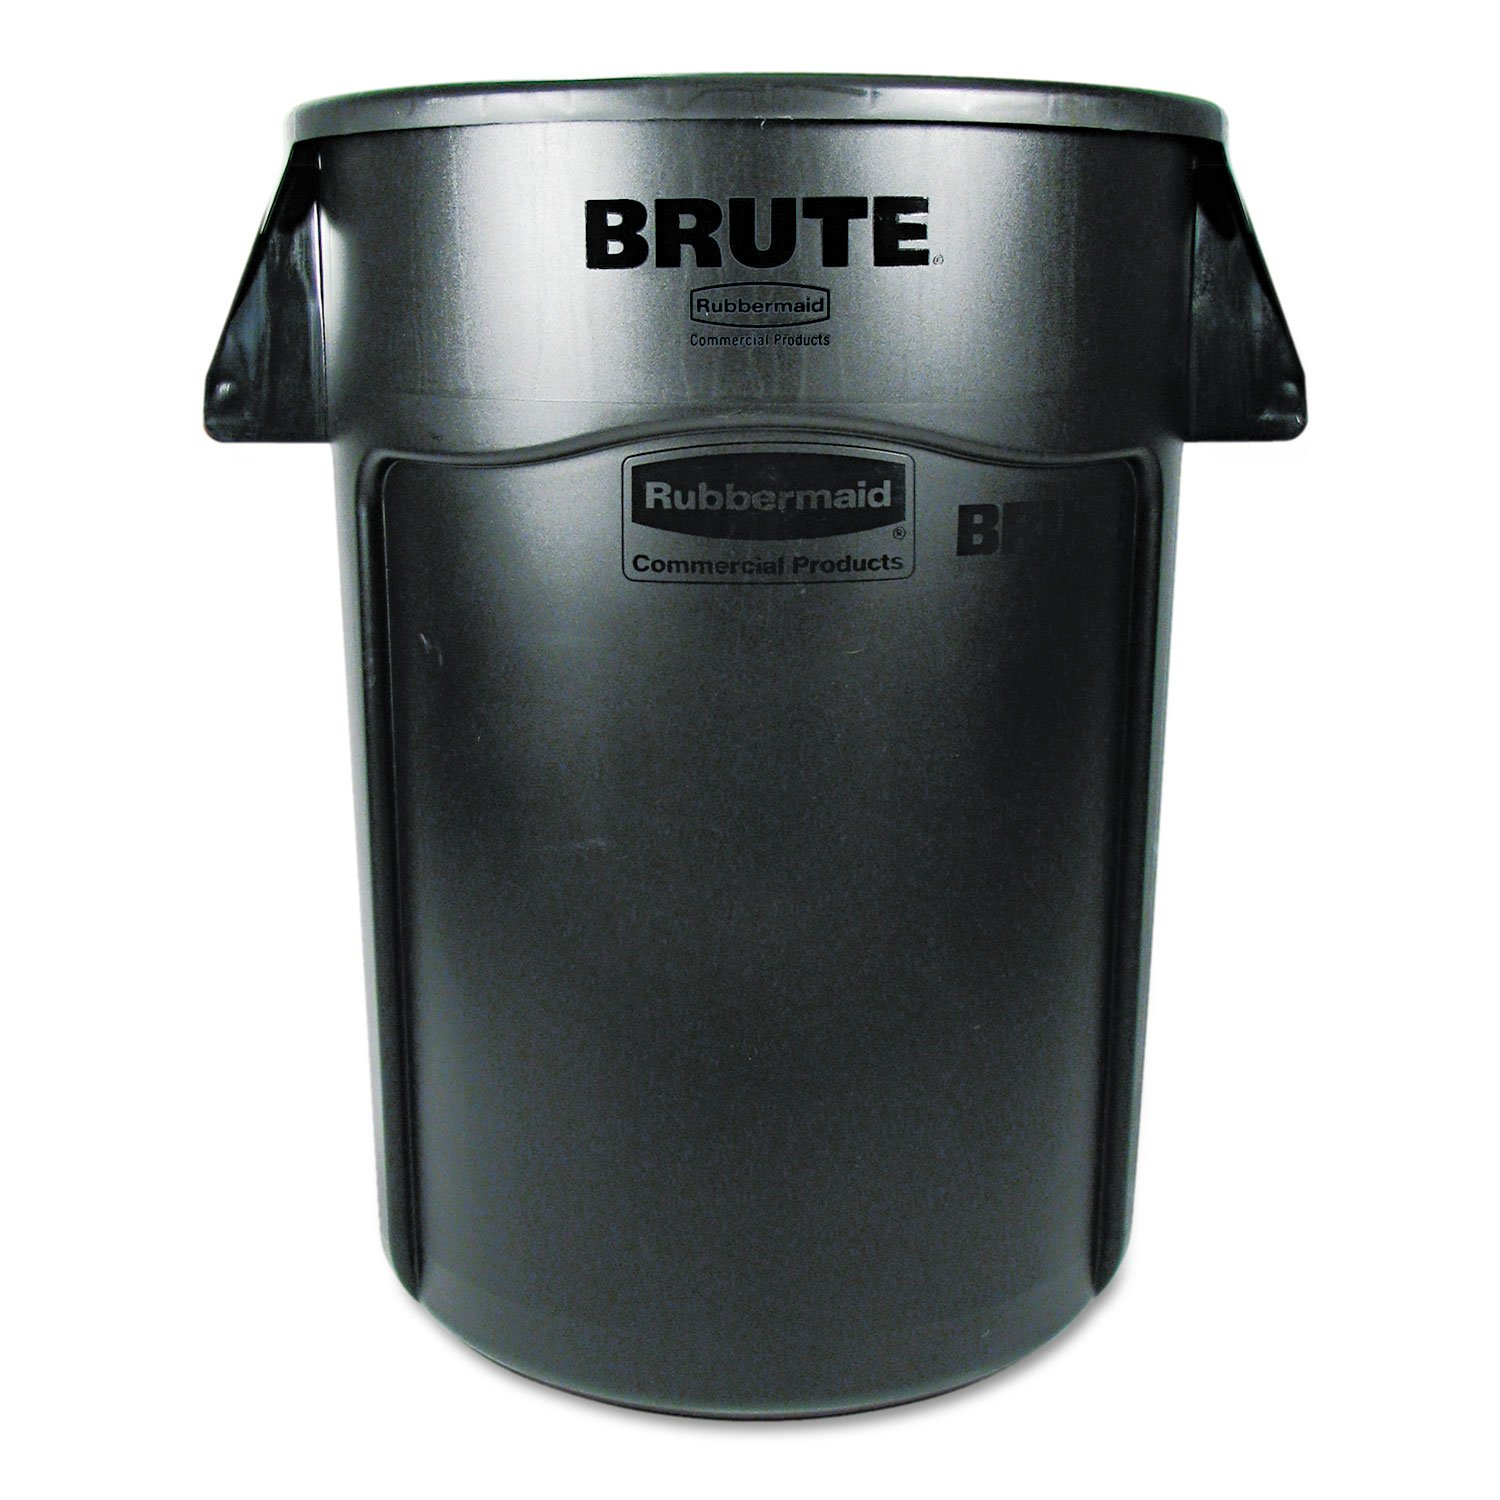 Rubbermaid BRUTE 44-Gallon Waste Container - 44 gal Capacity - Black